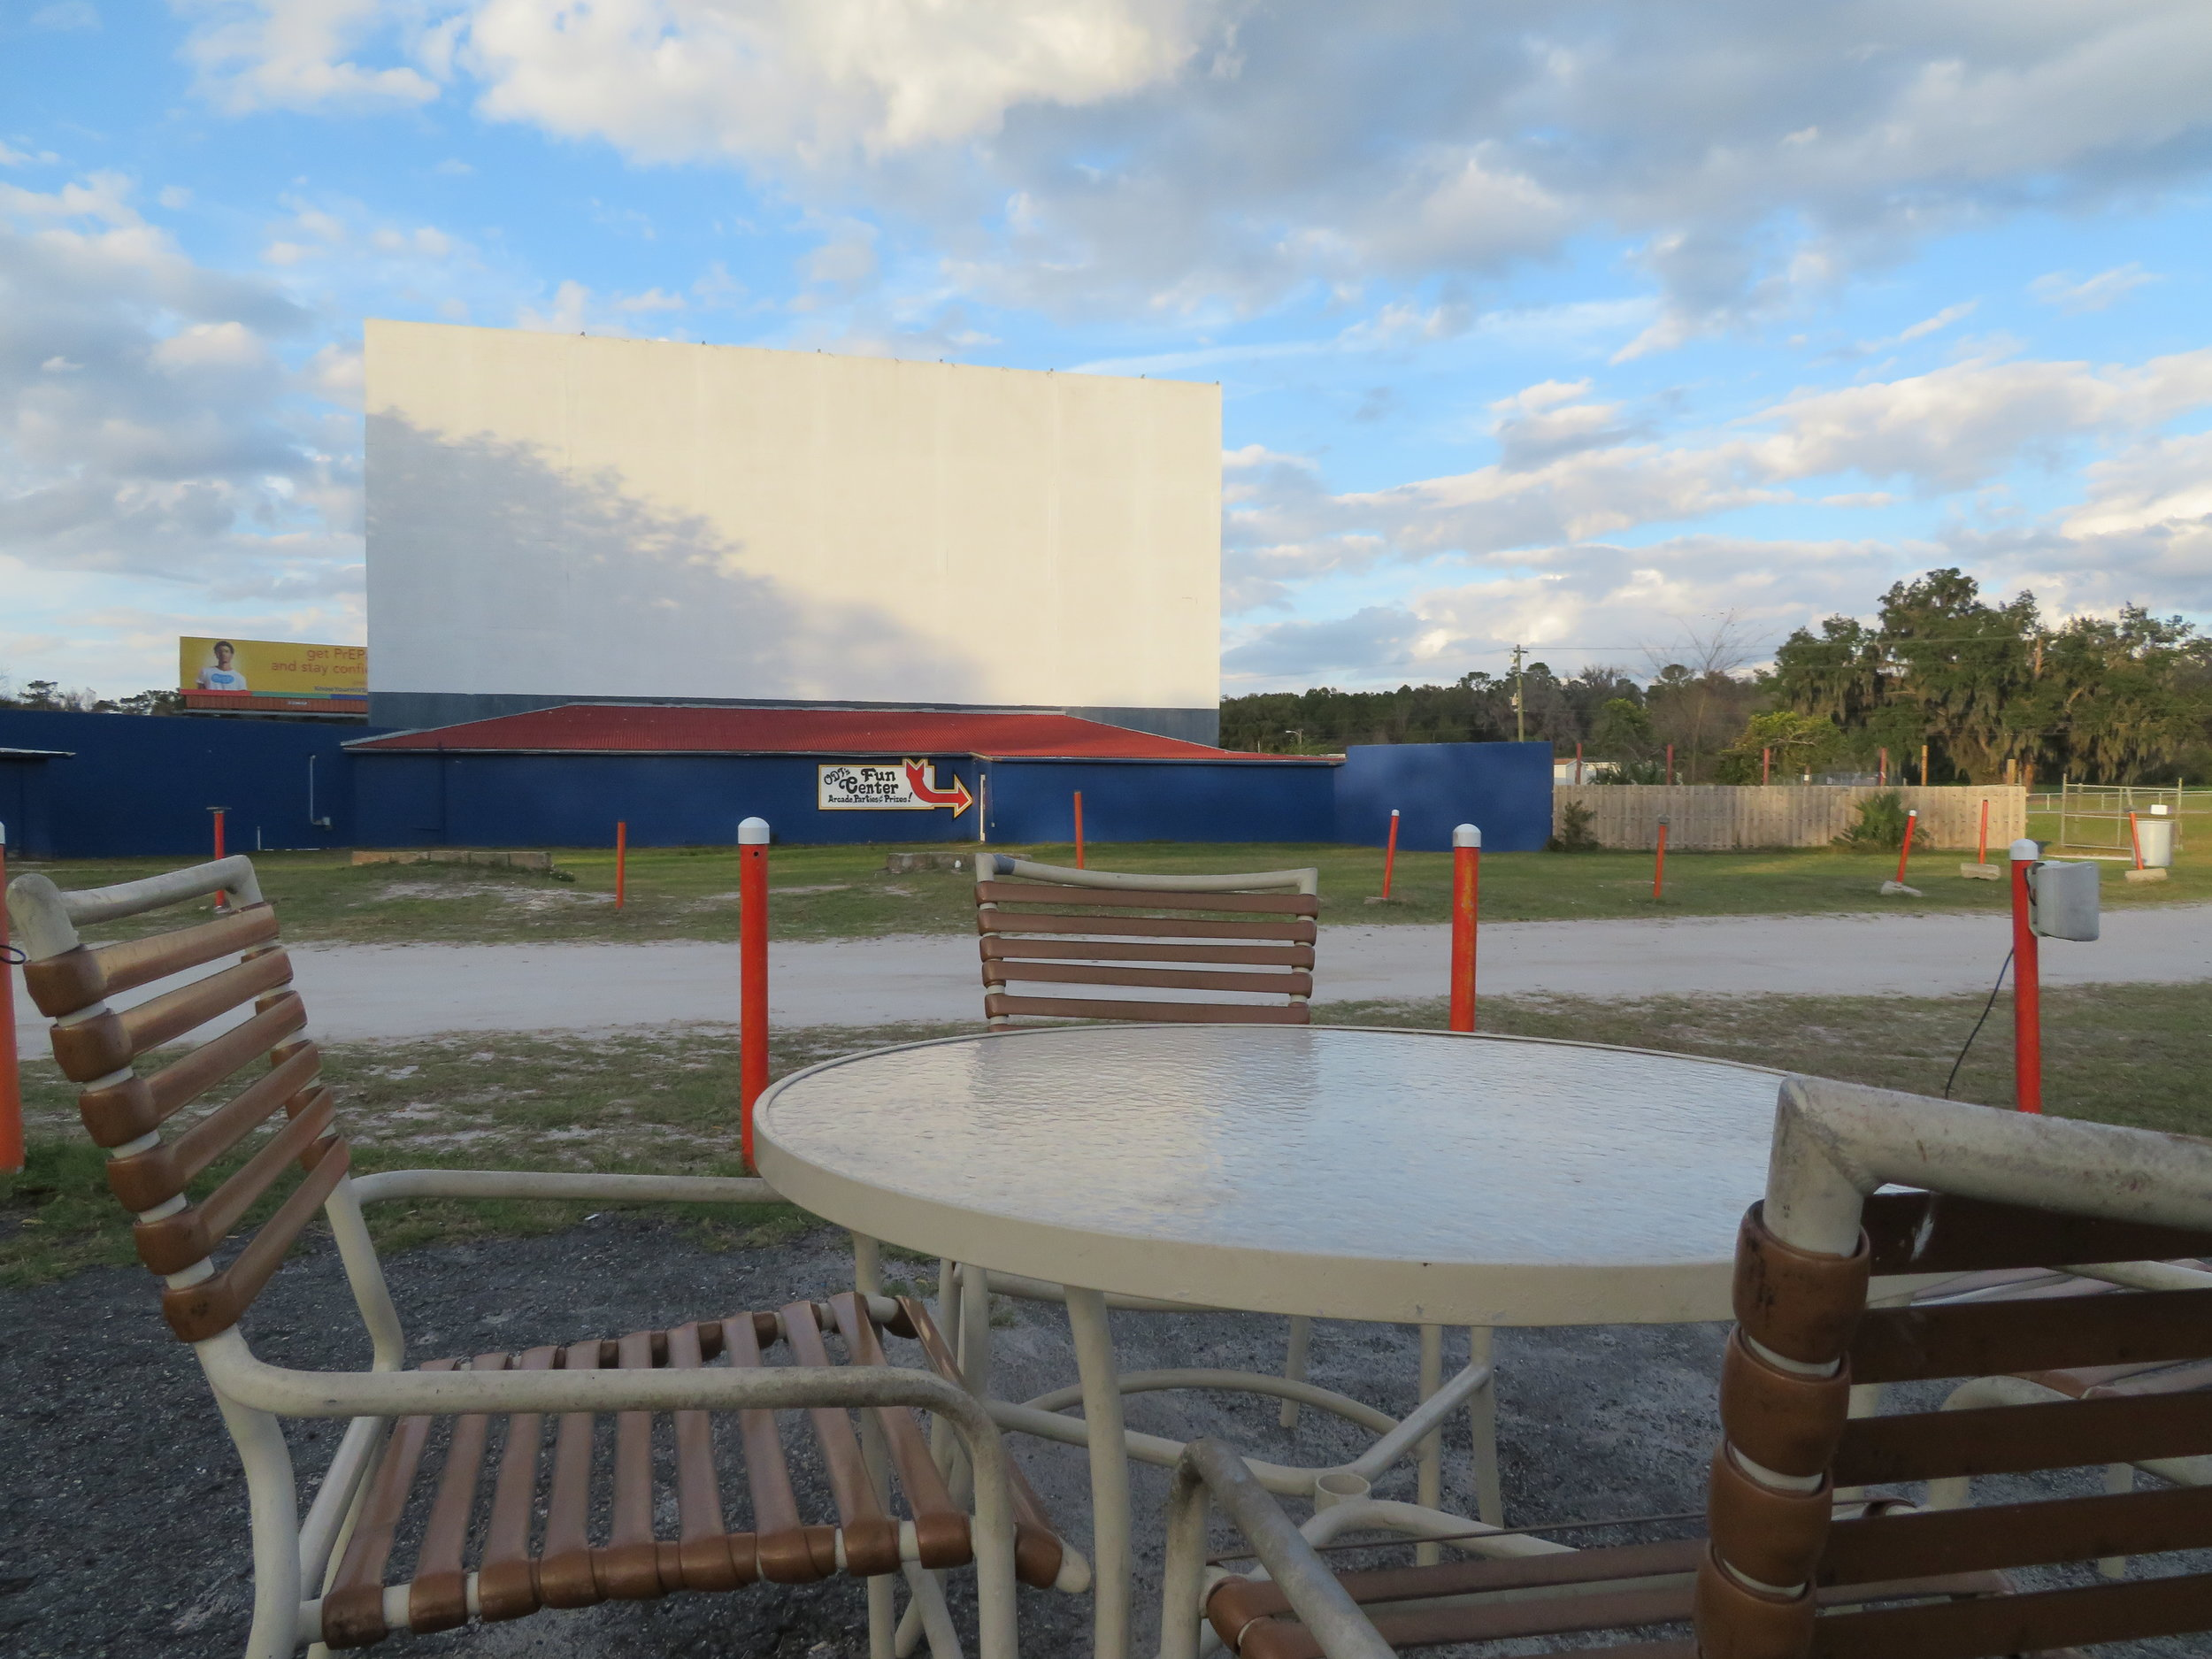 The Ocala Drive-in in Daylight